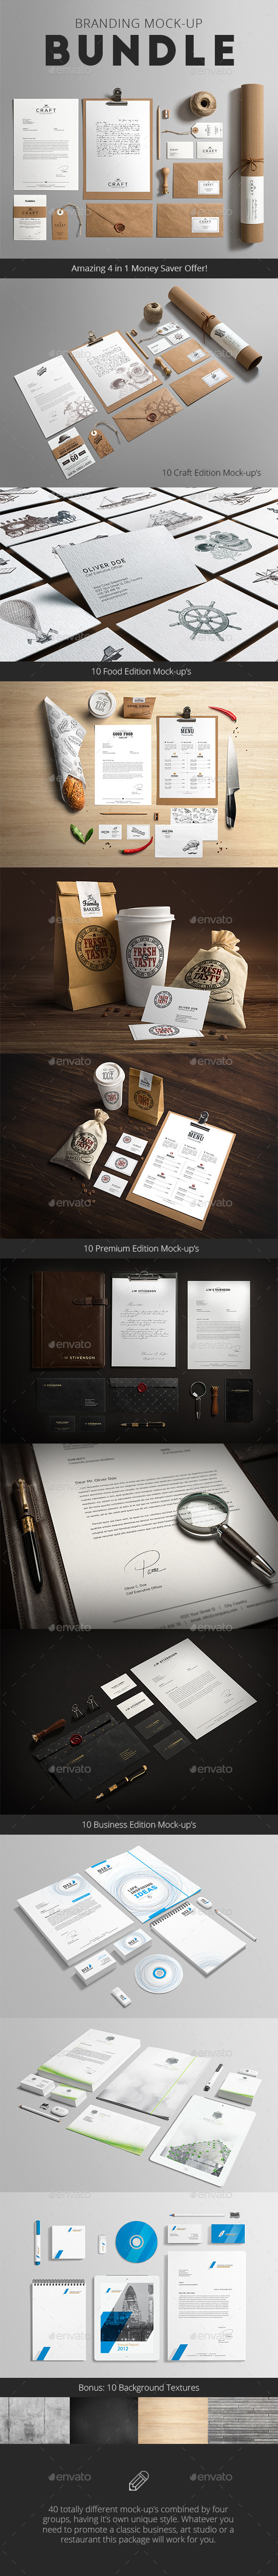 Ultimate Branding Mock-up Pack (Stationery)